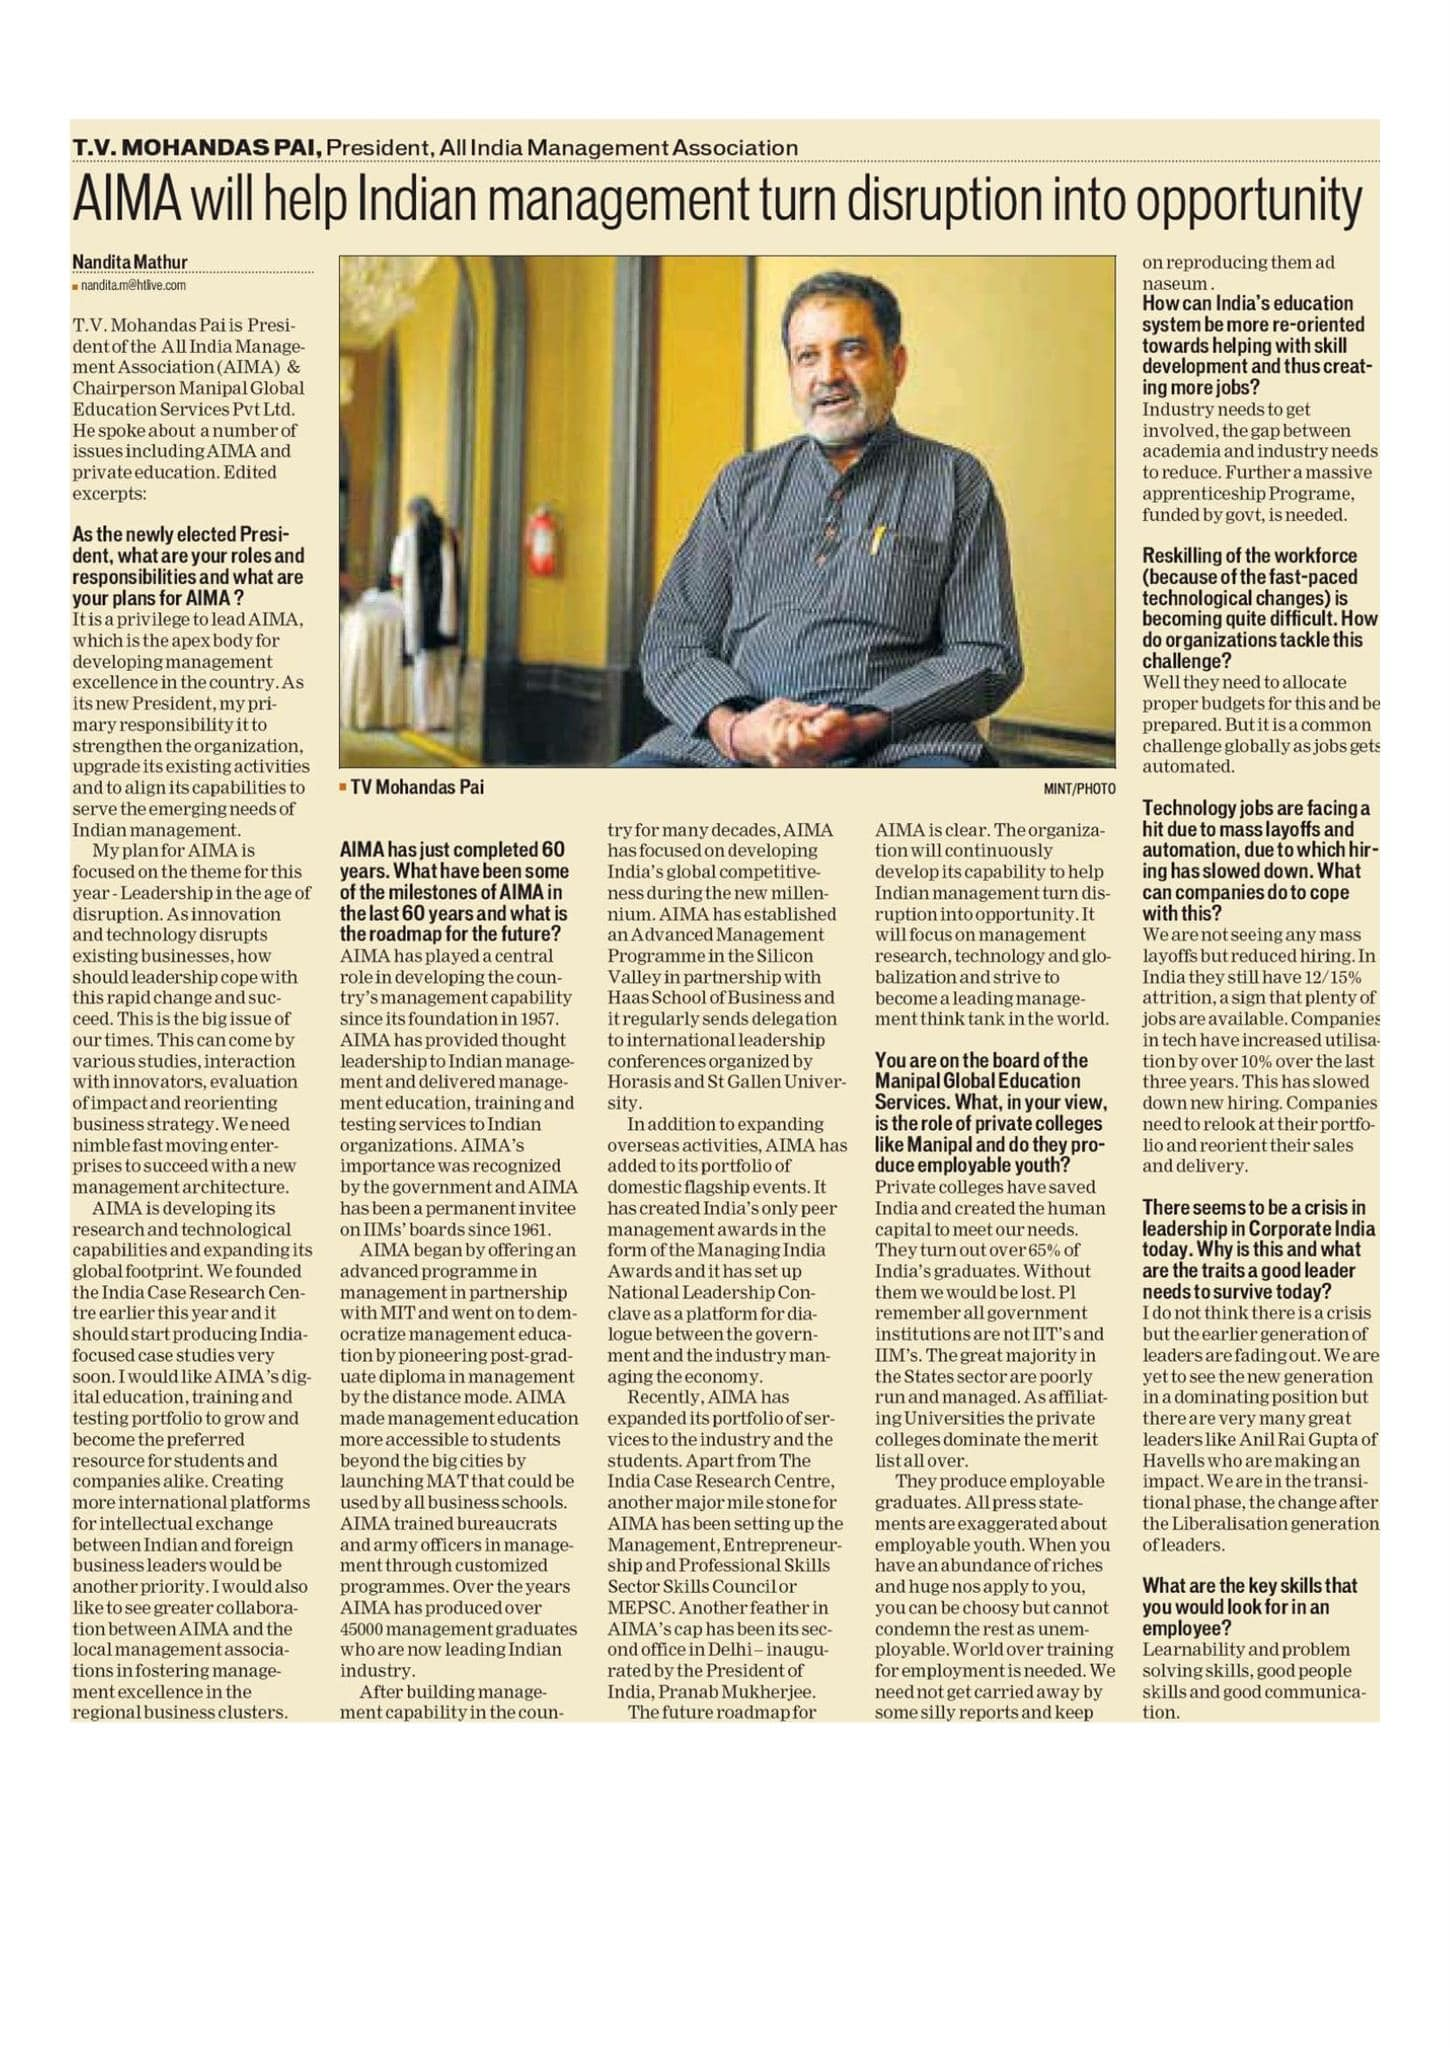 TV Mohandas Pai in todays' HT